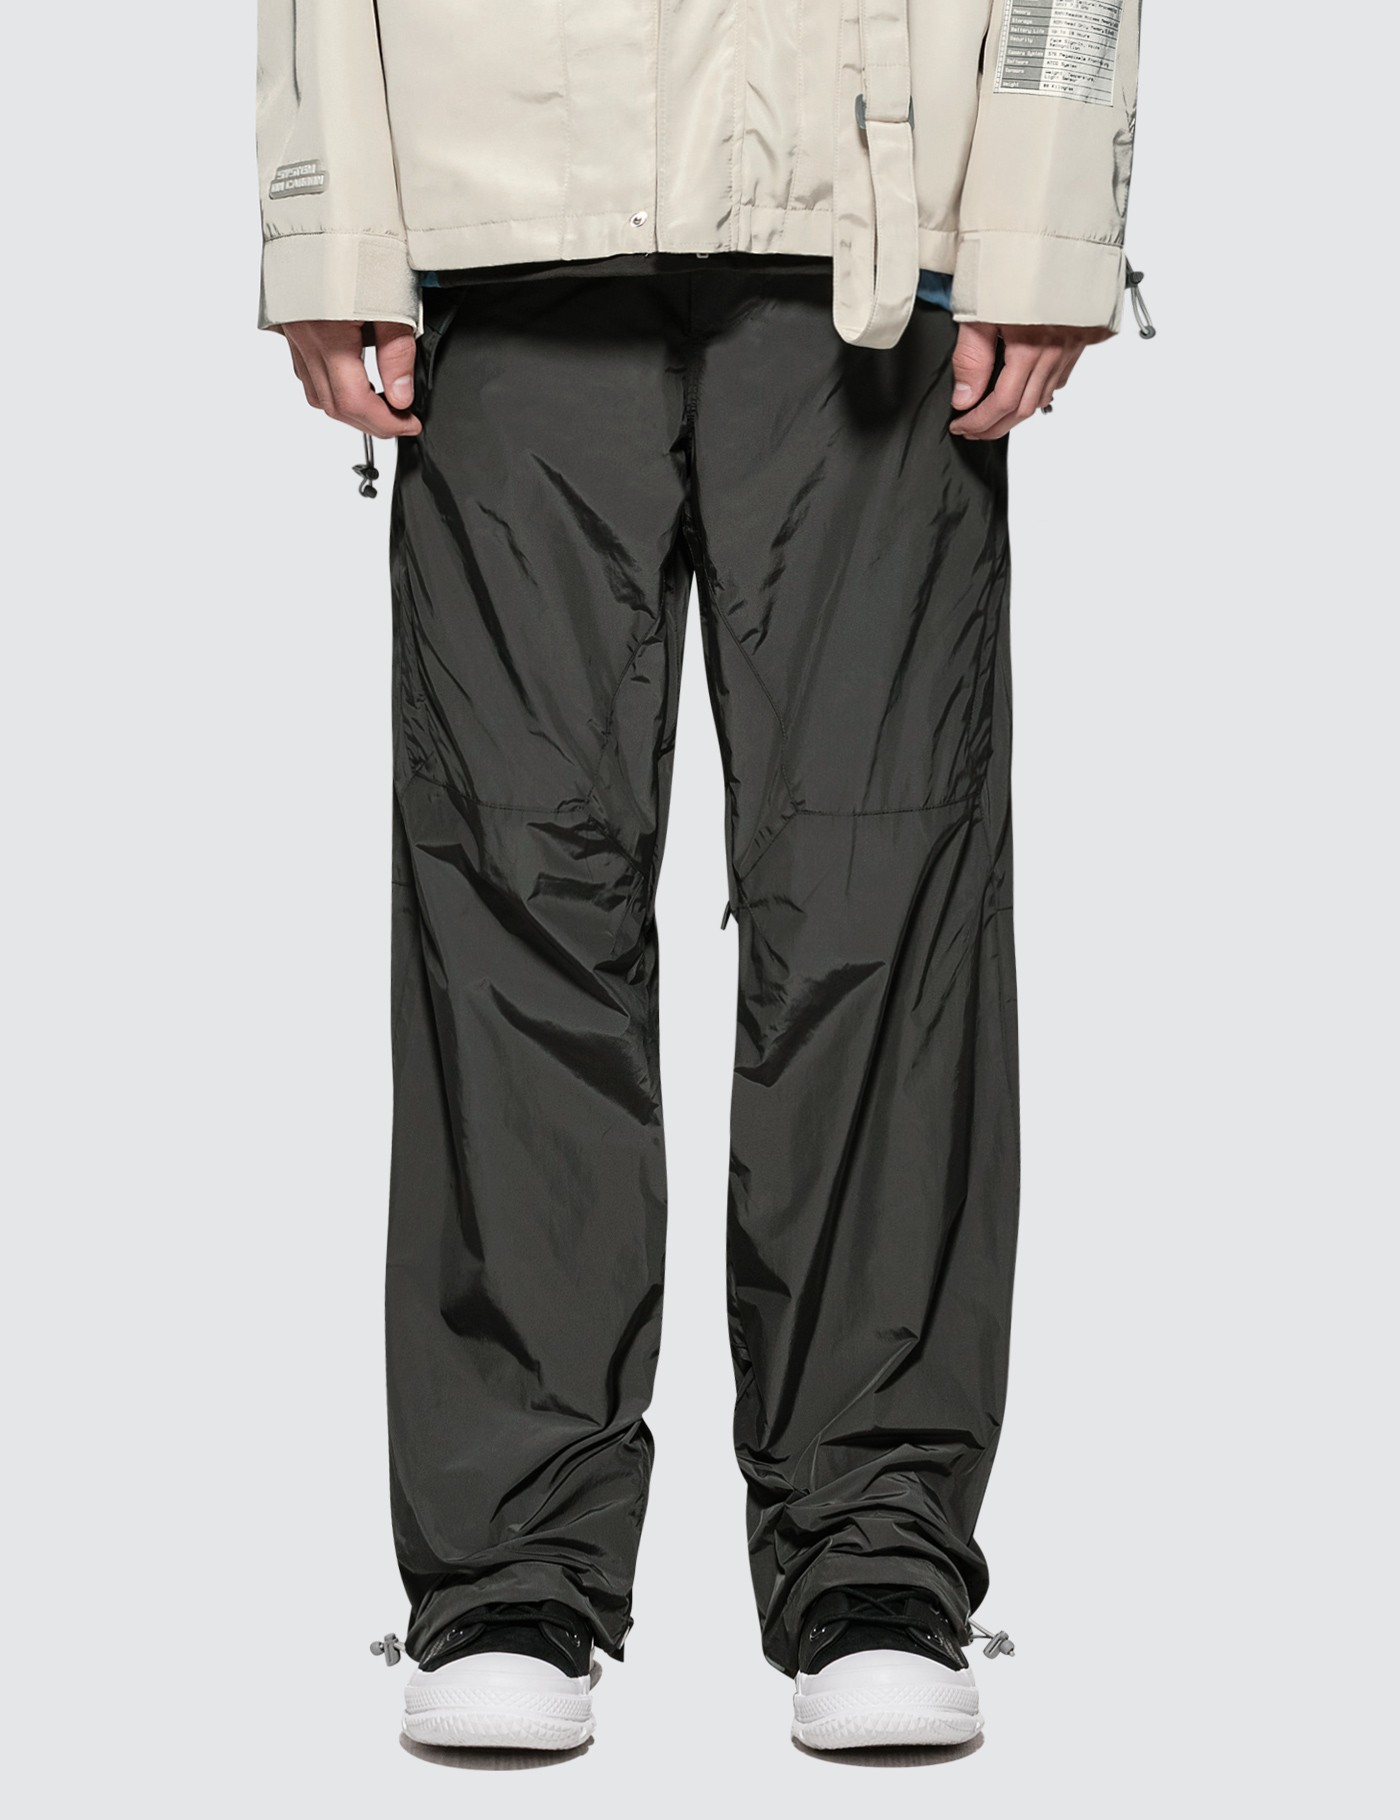 C2H4 Los Angeles Human Tech Specs Technical Pants With Utility Pockets Picture